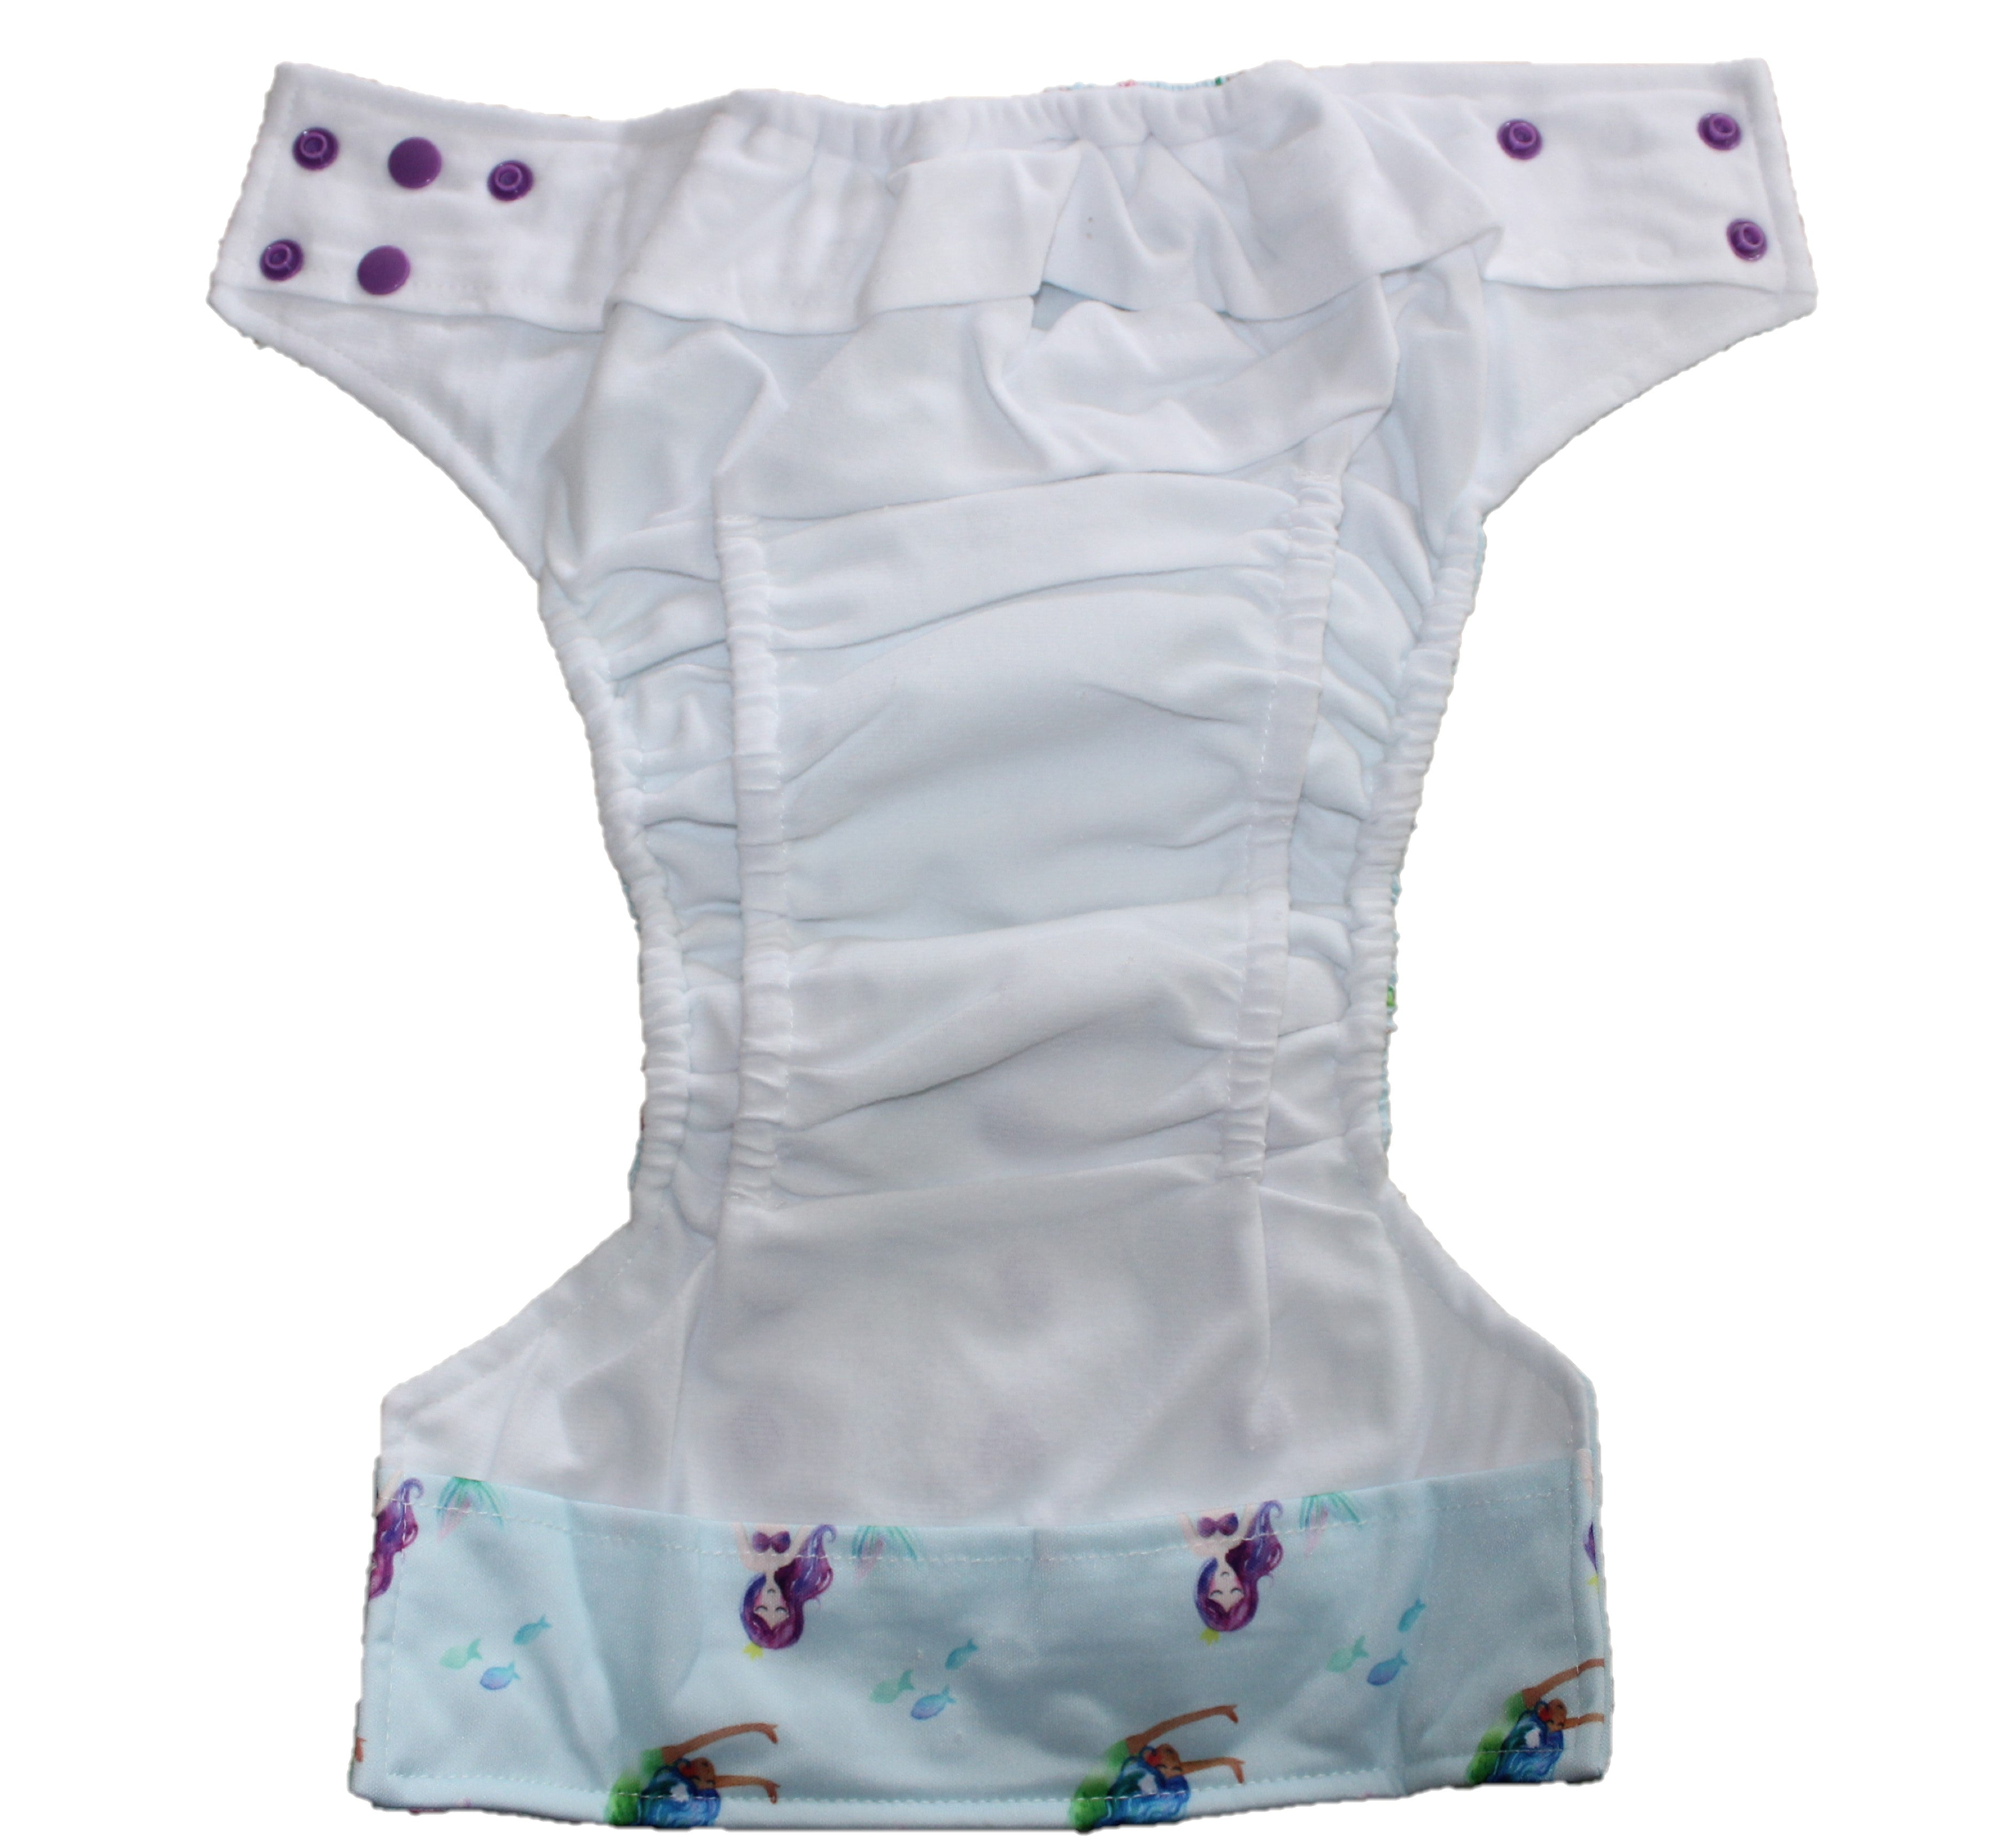 Monsters OSFM Nappy - Boho Babes Cloth Nappies